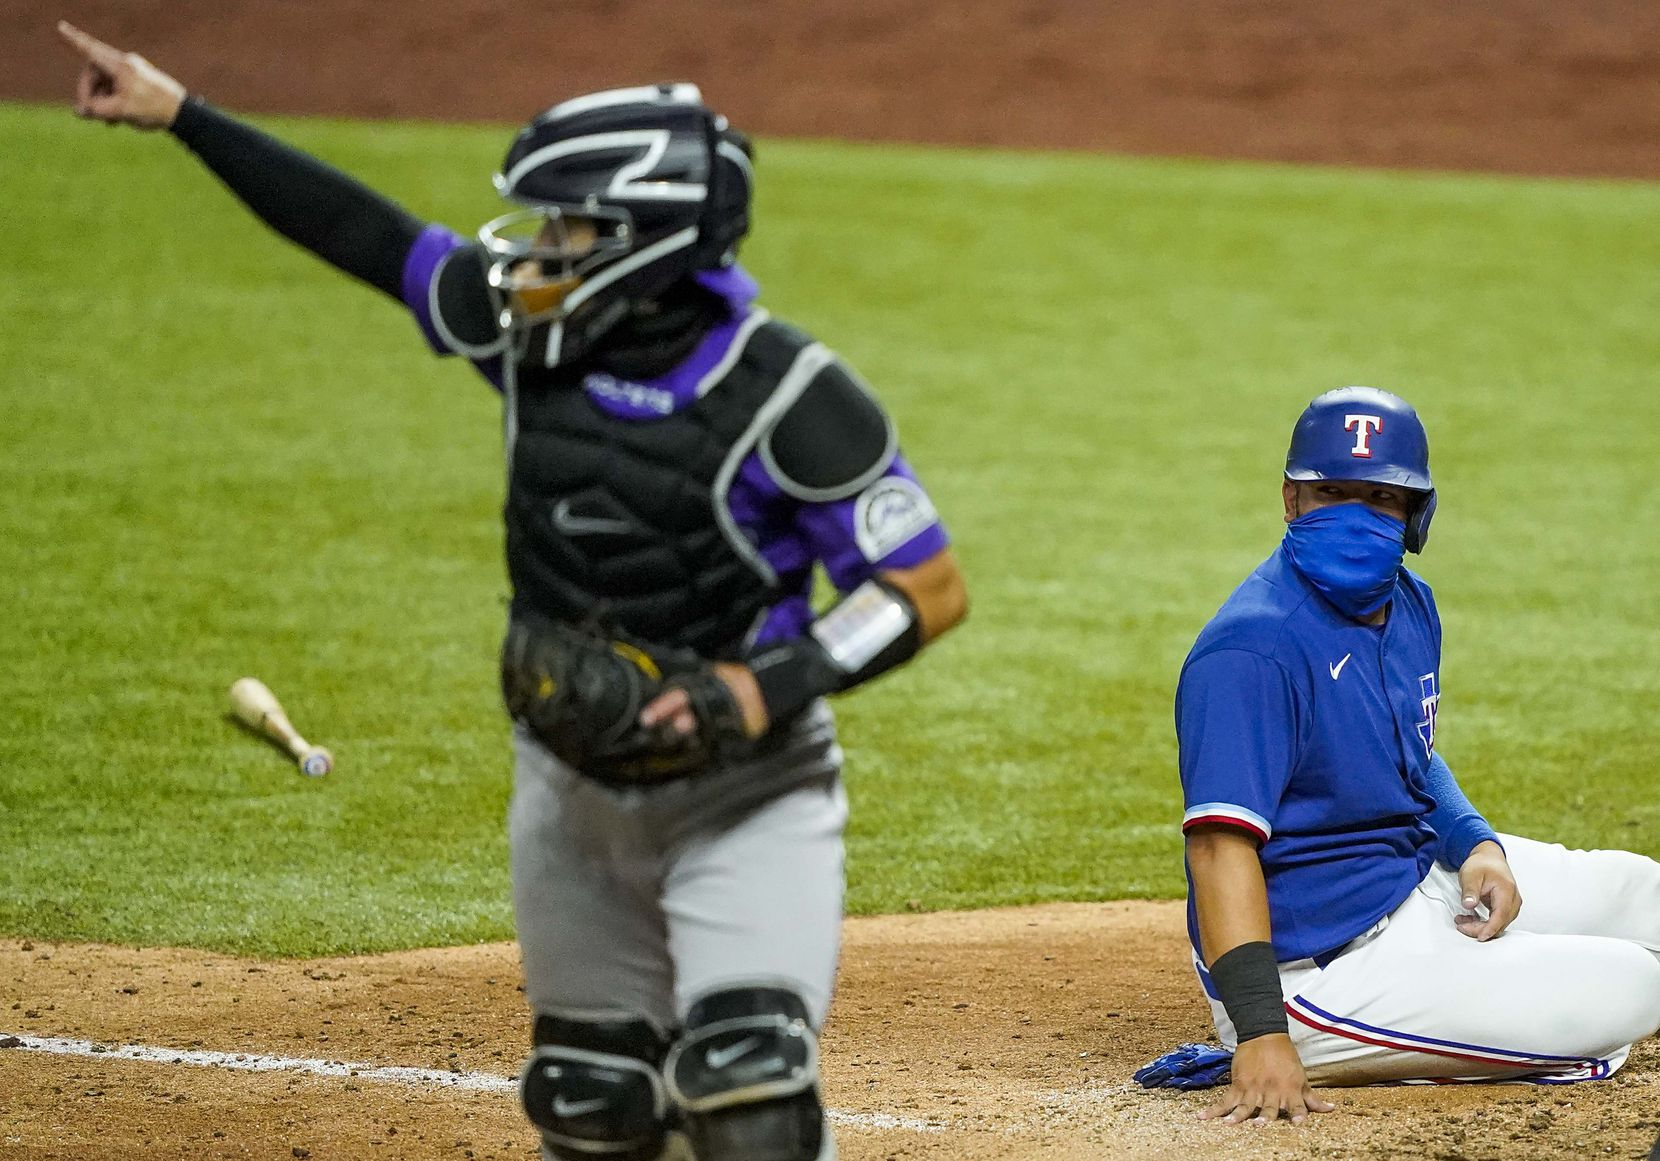 Texas Rangers catcher Jose Trevino reacts after being thrown out at home trying to score on a double by outfielder Nick Solak as Colorado Rockies catcher Tony Wolters celebrates the tag on a throw by center fielder David Dahl during the sixth inning of an exhibition game at Globe Life Field on Tuesday, July 21, 2020.